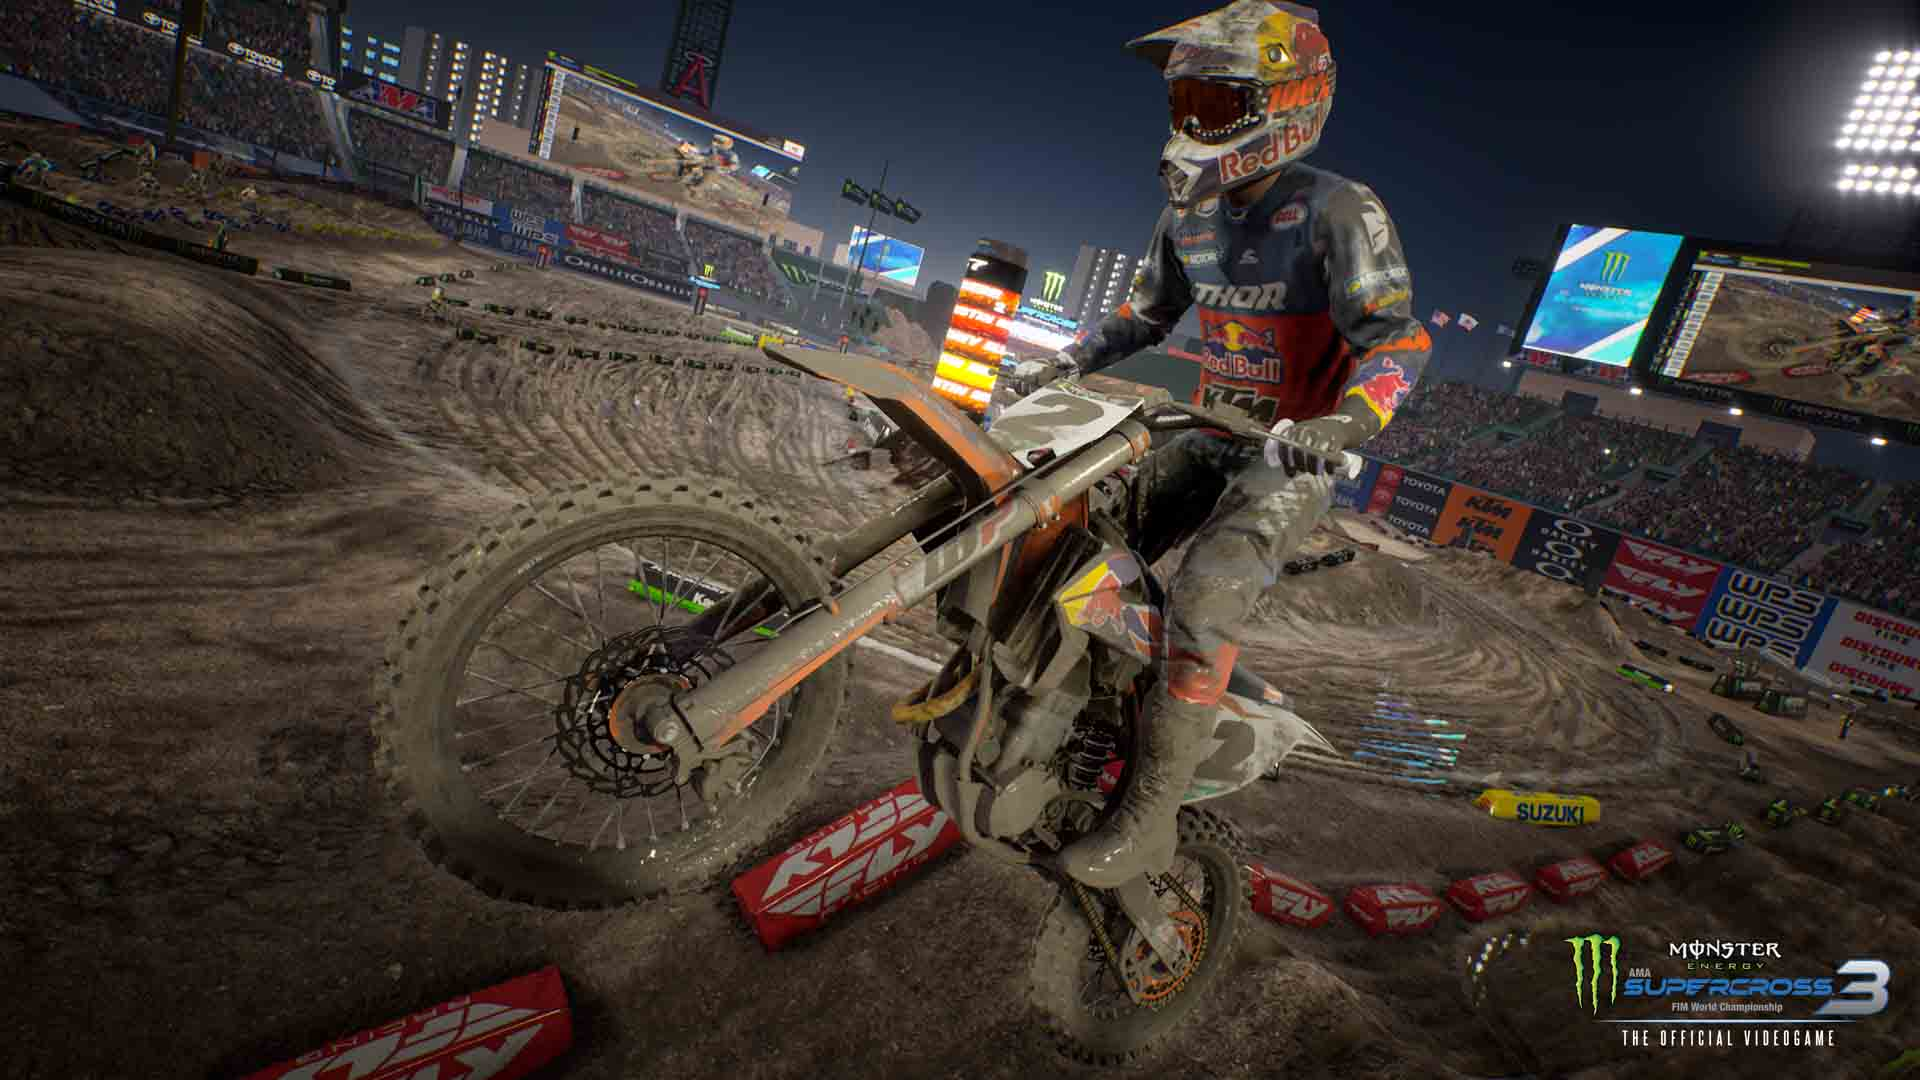 Monster Energy Supercross - The Official Videogame 3 - Screenshot 3